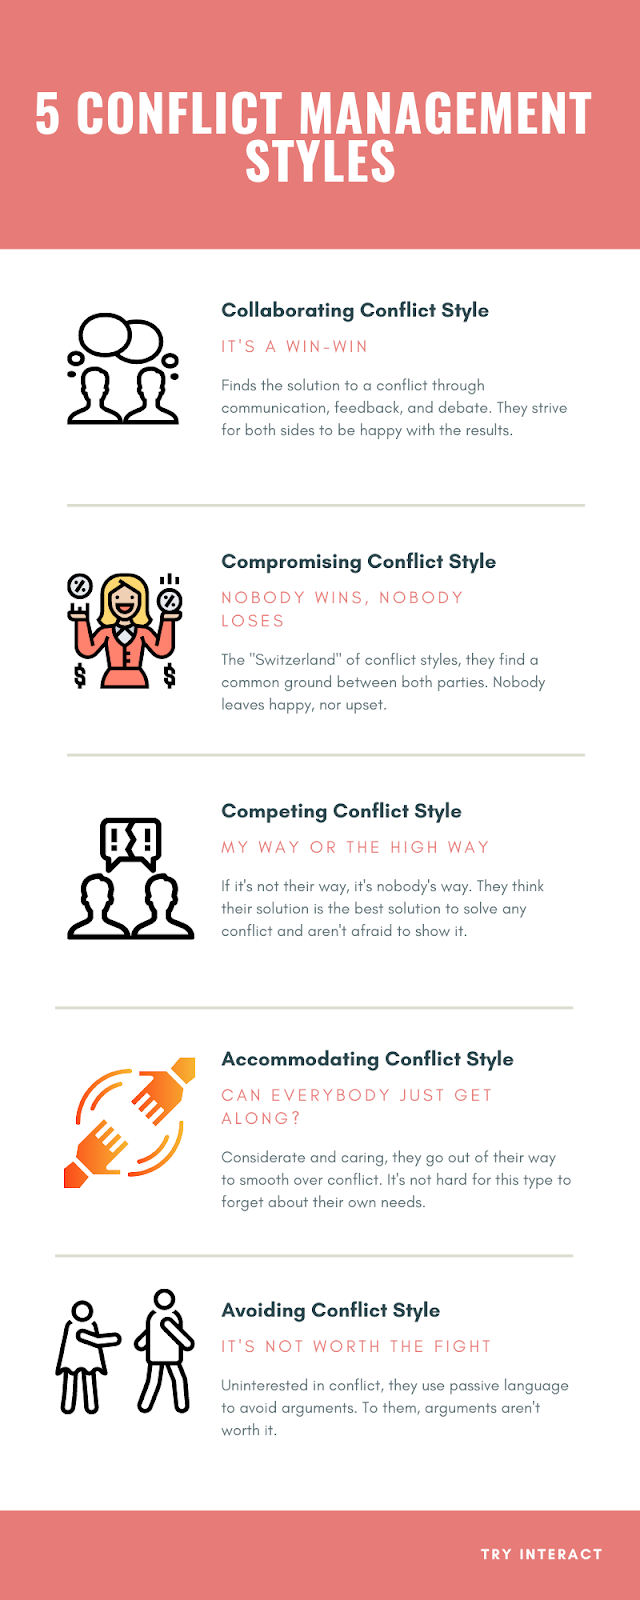 infographic about 5 conflict management styles